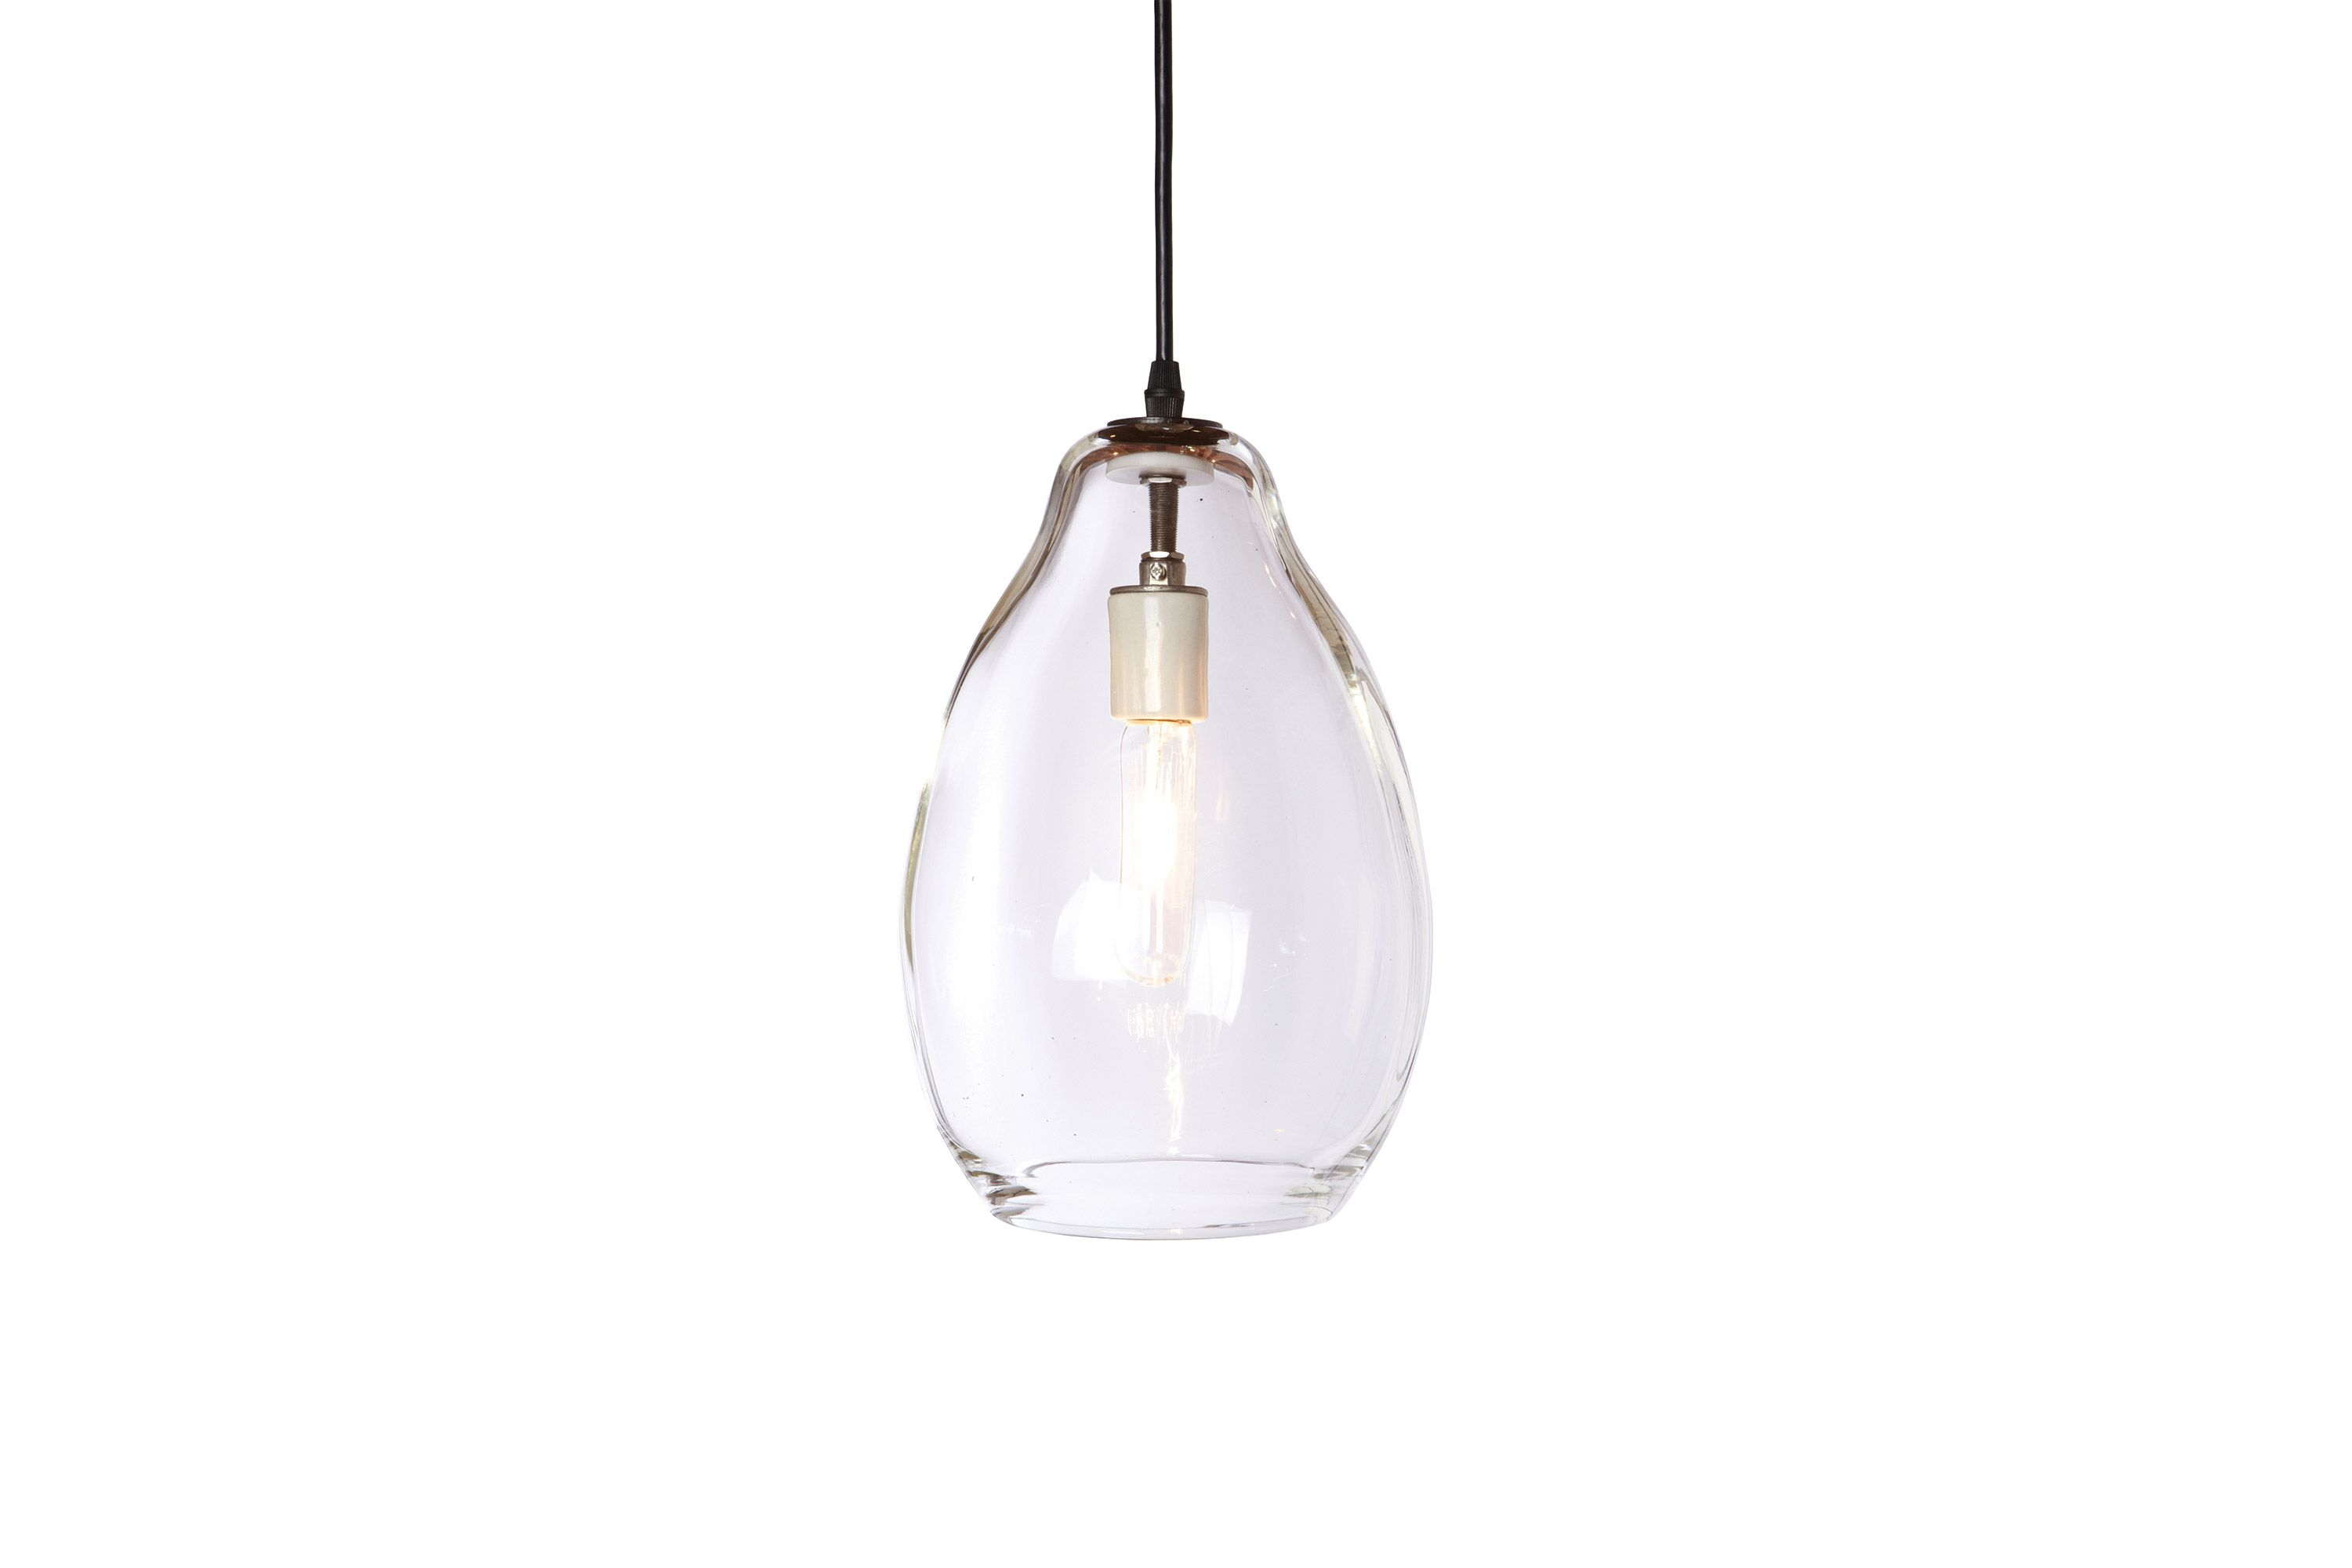 Bailey Lamp Med Cisco Brothers Lighting Old Houses